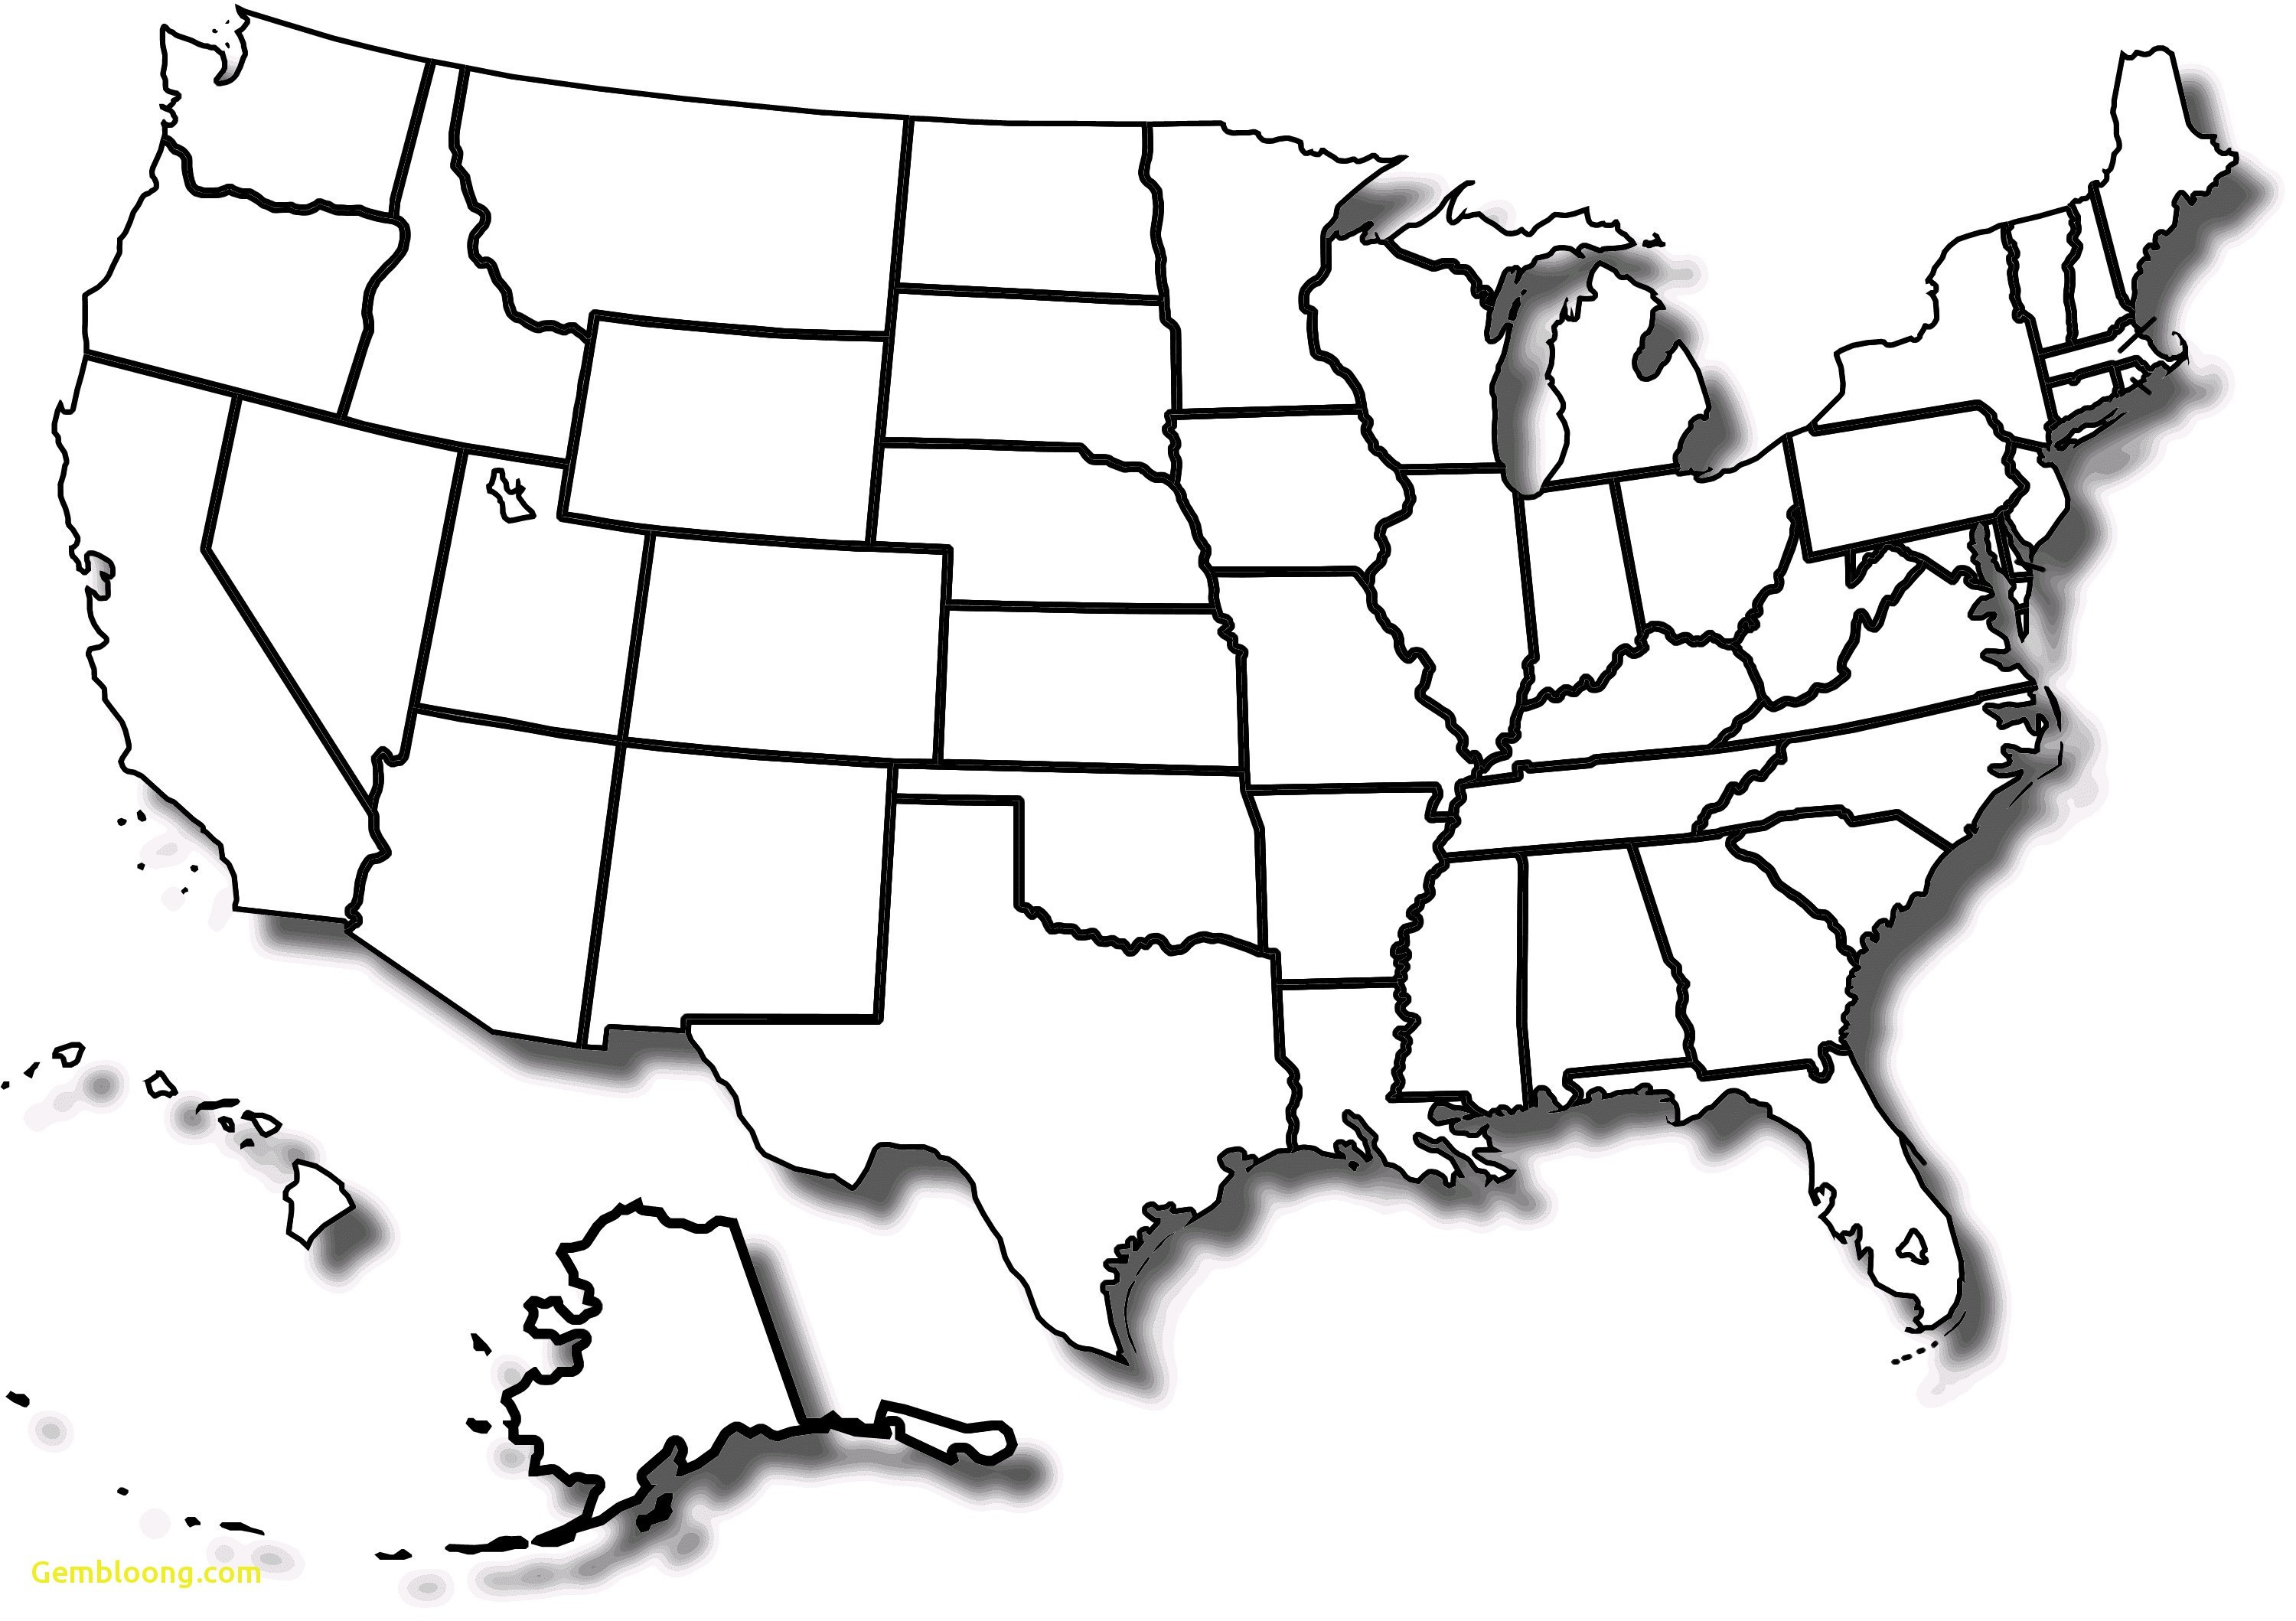 Printable Blank Us Map Free Blank Us Maps My Blog Luxury United - Map Of United States Without State Names Printable